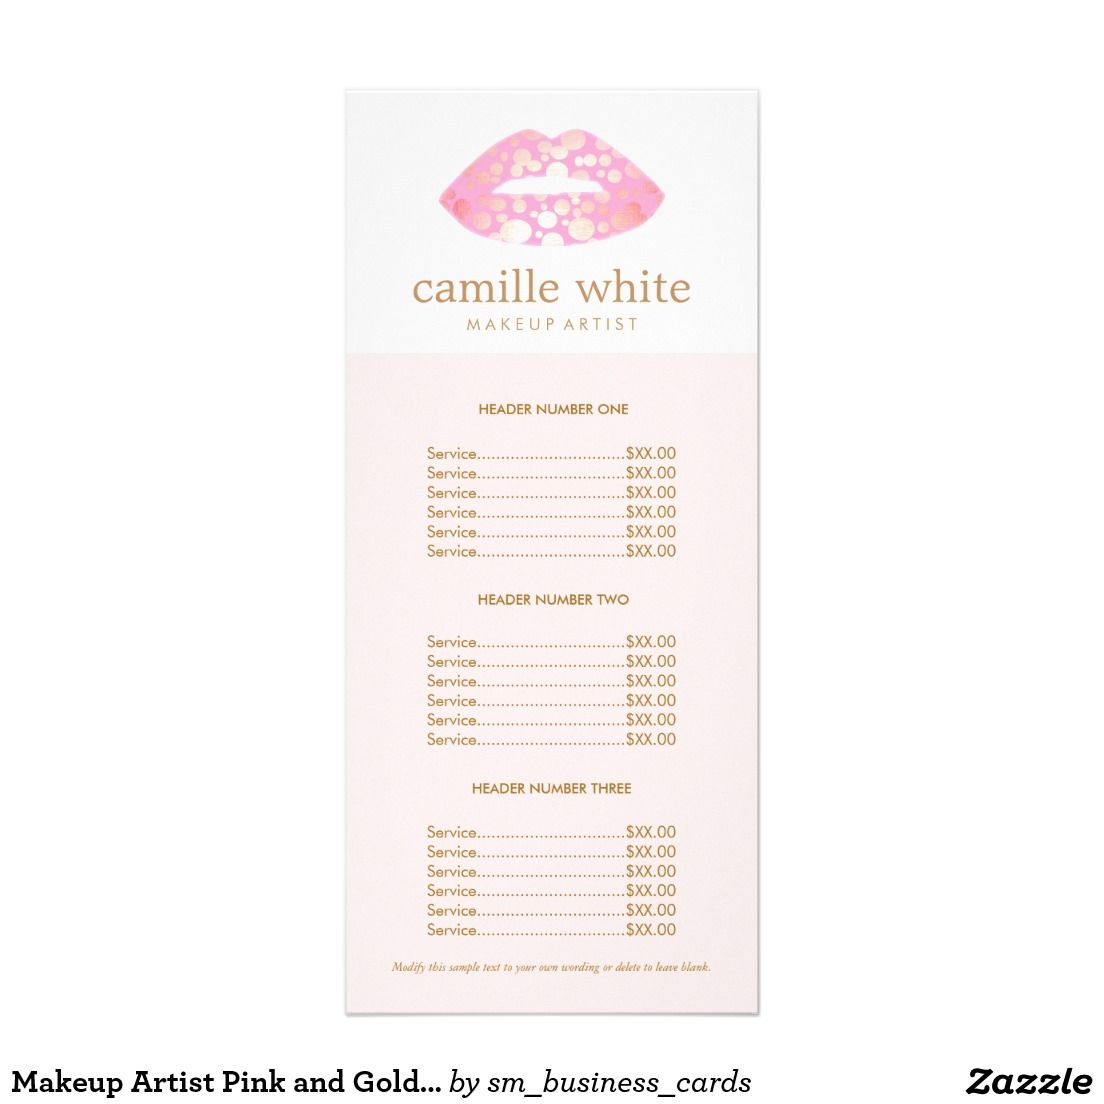 Beauty Salon Prices Makeup Artist Pink And Gold Lips Pink Price List Rack Card